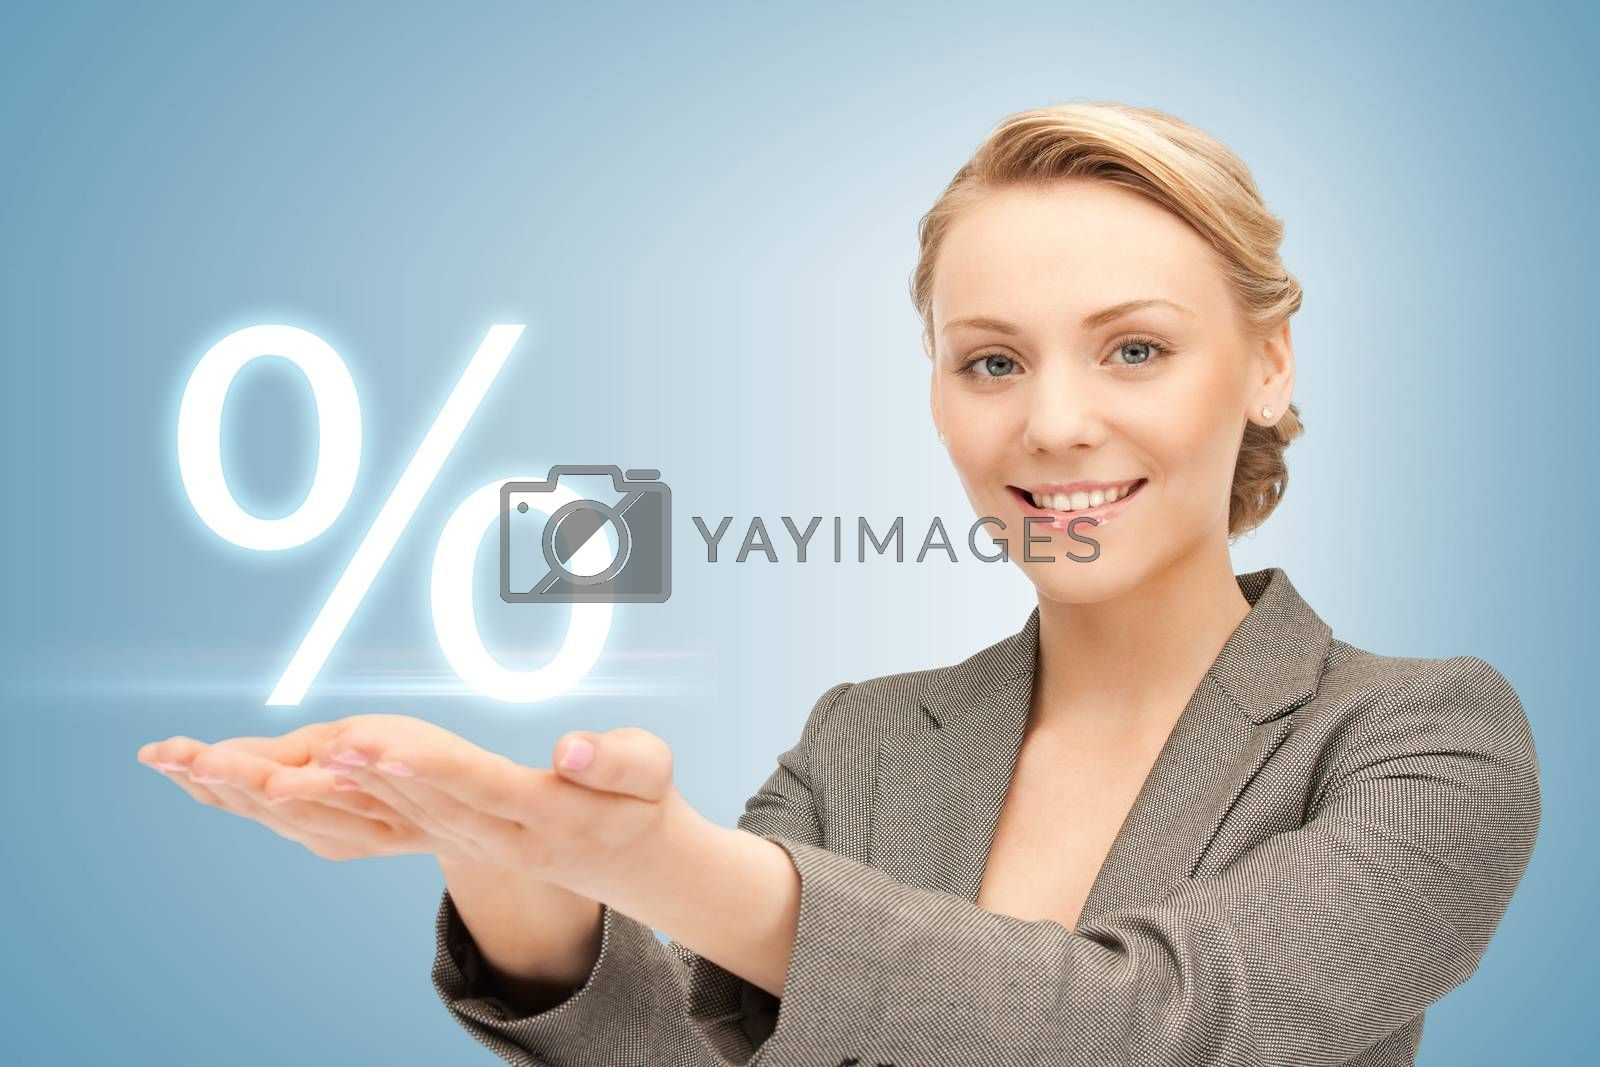 woman showing sign of percent in her hands by dolgachov